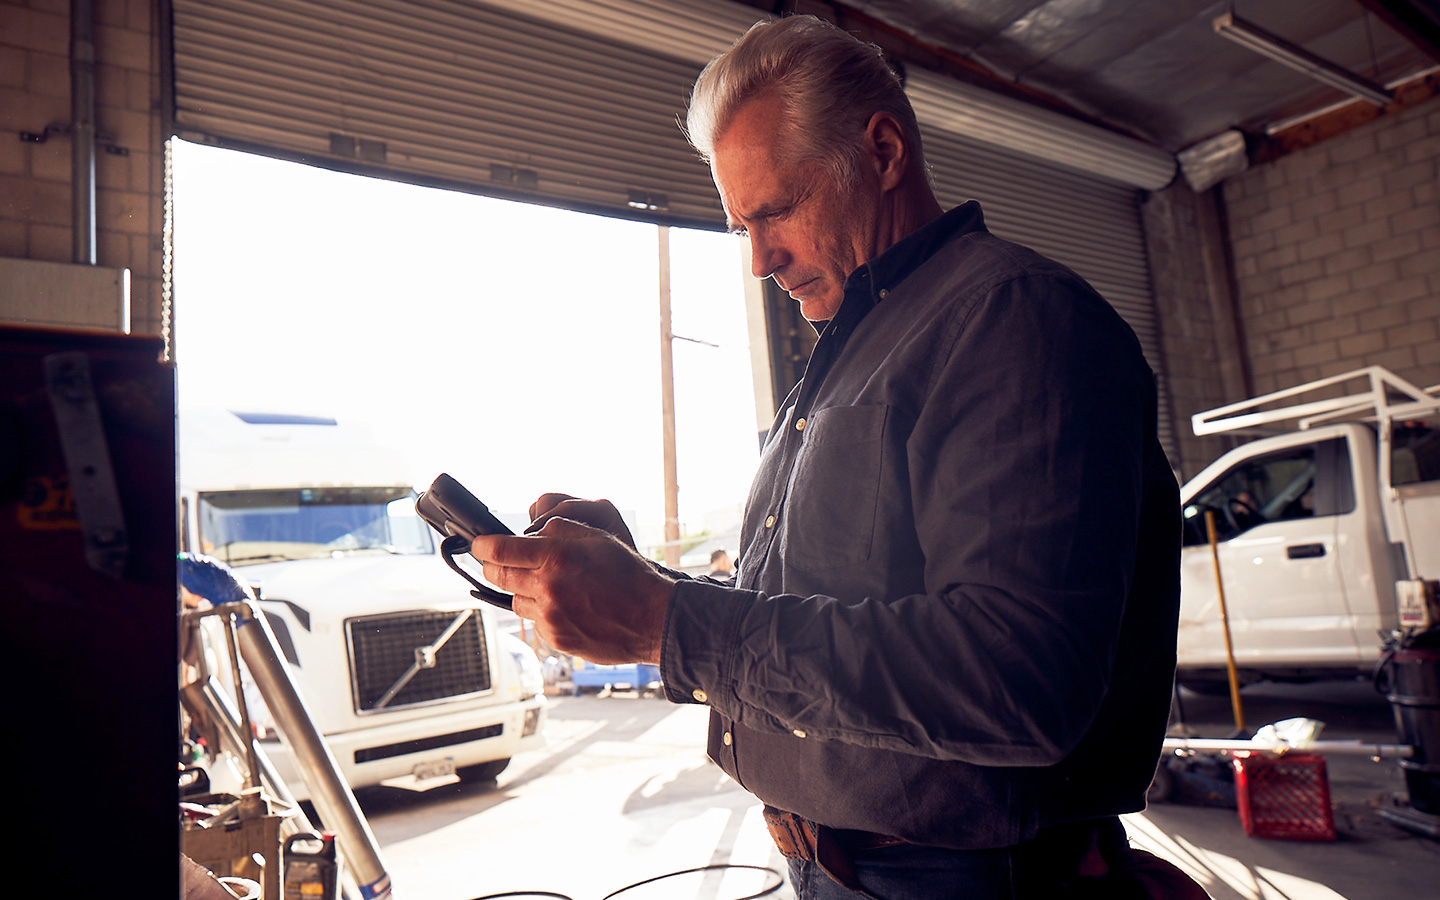 Overlooked costs and liabilities: How a fleet management solution can help your business